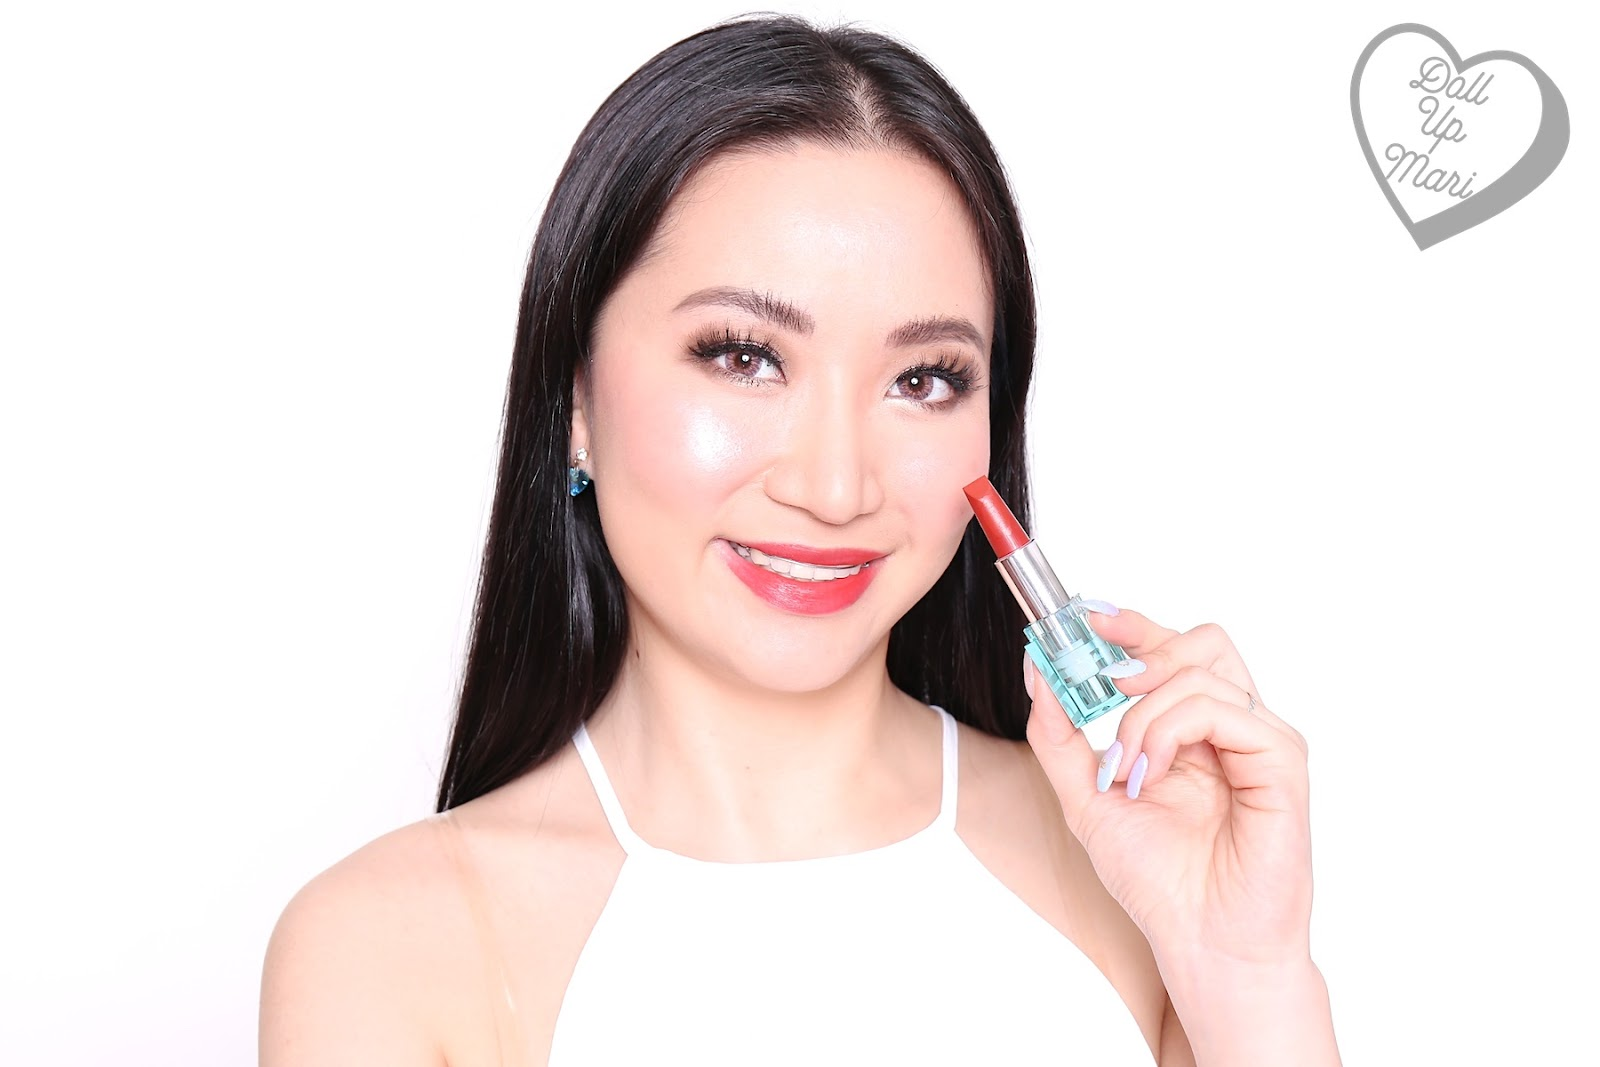 Marilene wearing red side of BLK Cosmetics K-Beauty K-Drama All-Day Intense Matte Lipstick in the shade of Dandelion